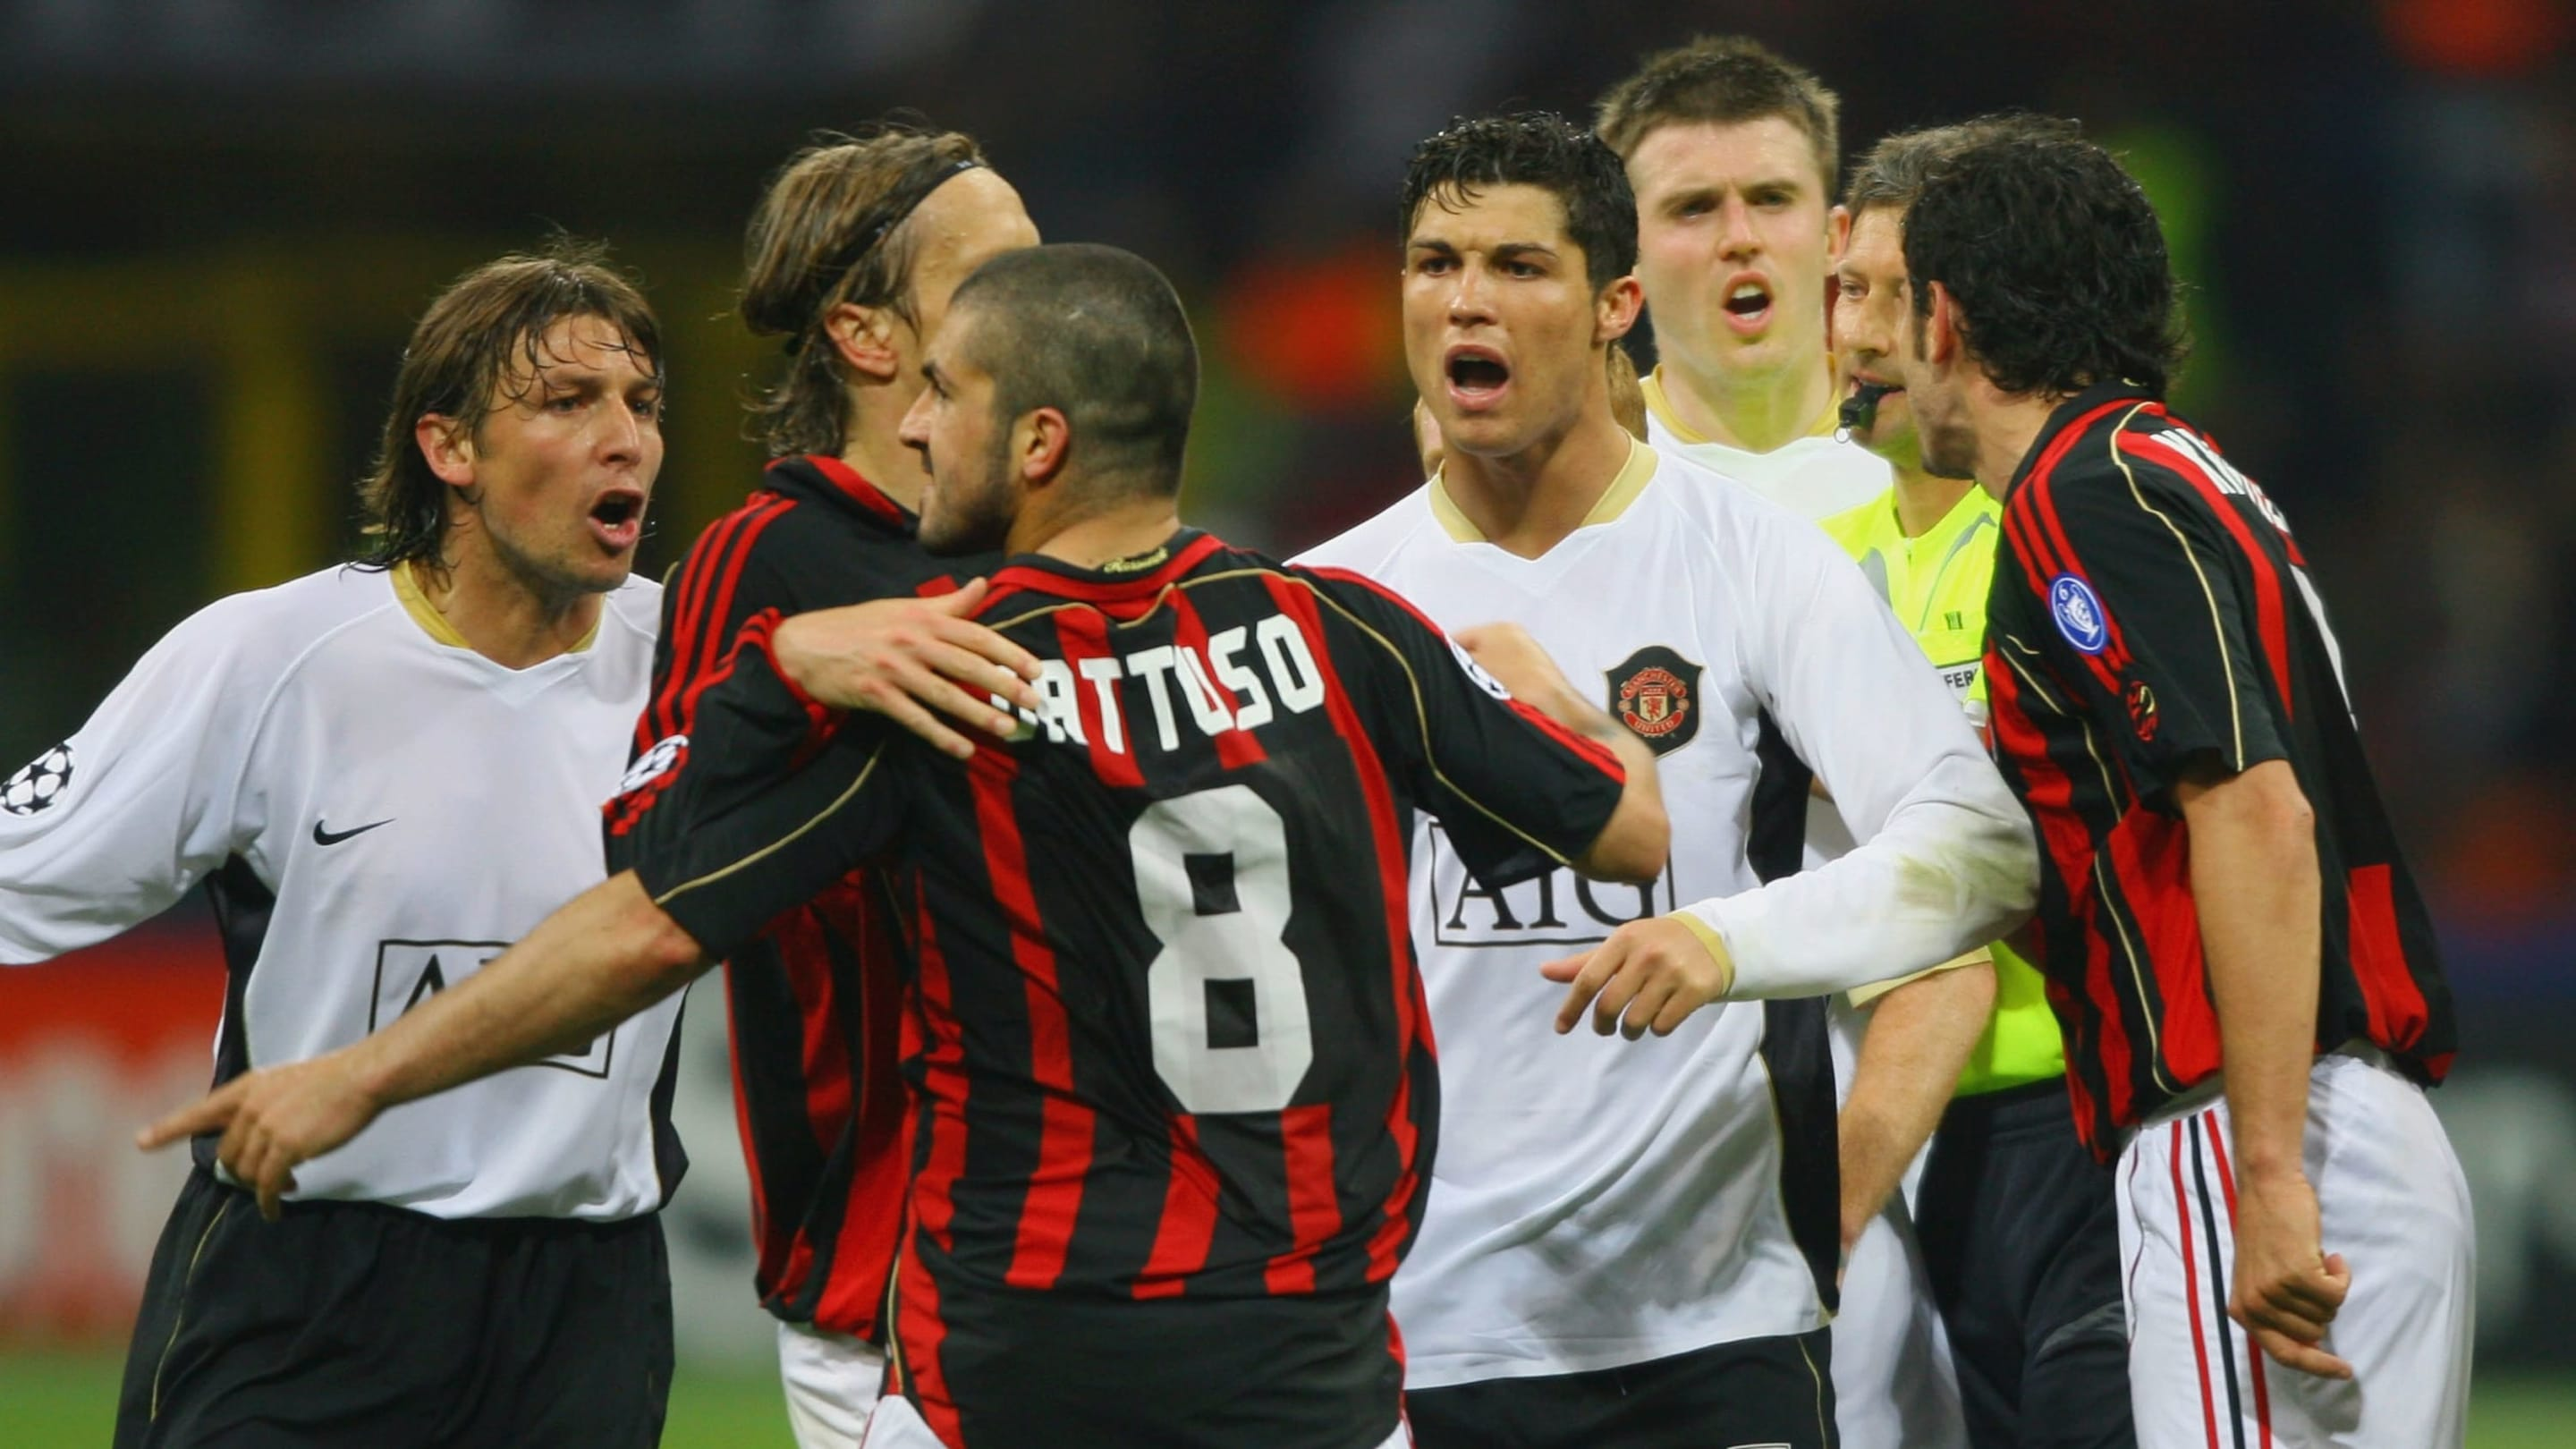 Man Utd vs AC Milan: A mouthwatering contest between two recovering giants